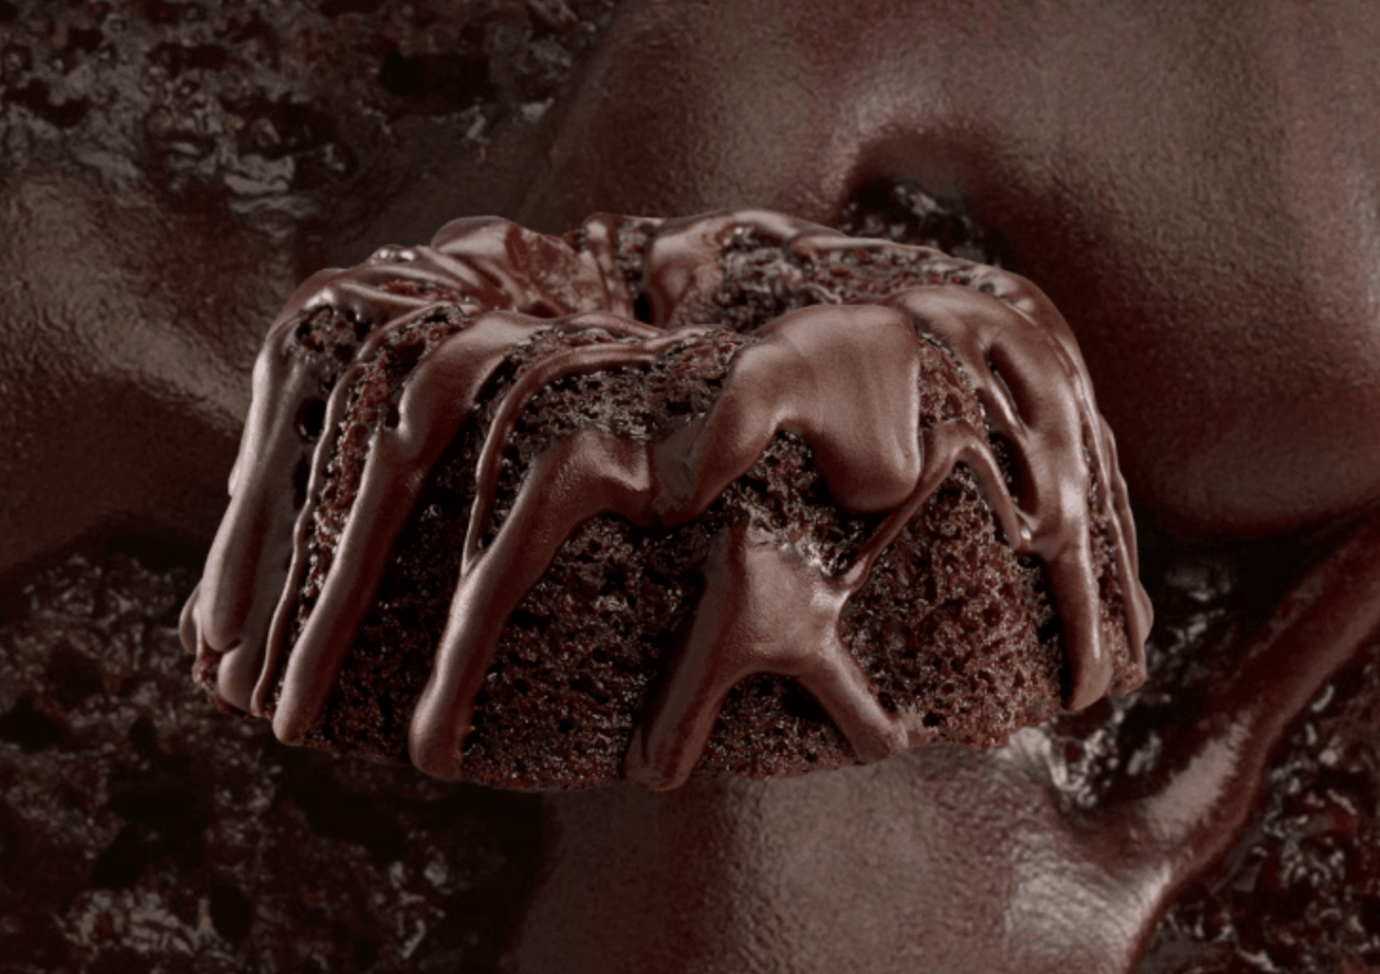 Jack In The Box Chocolate Overload Cake Ingredients